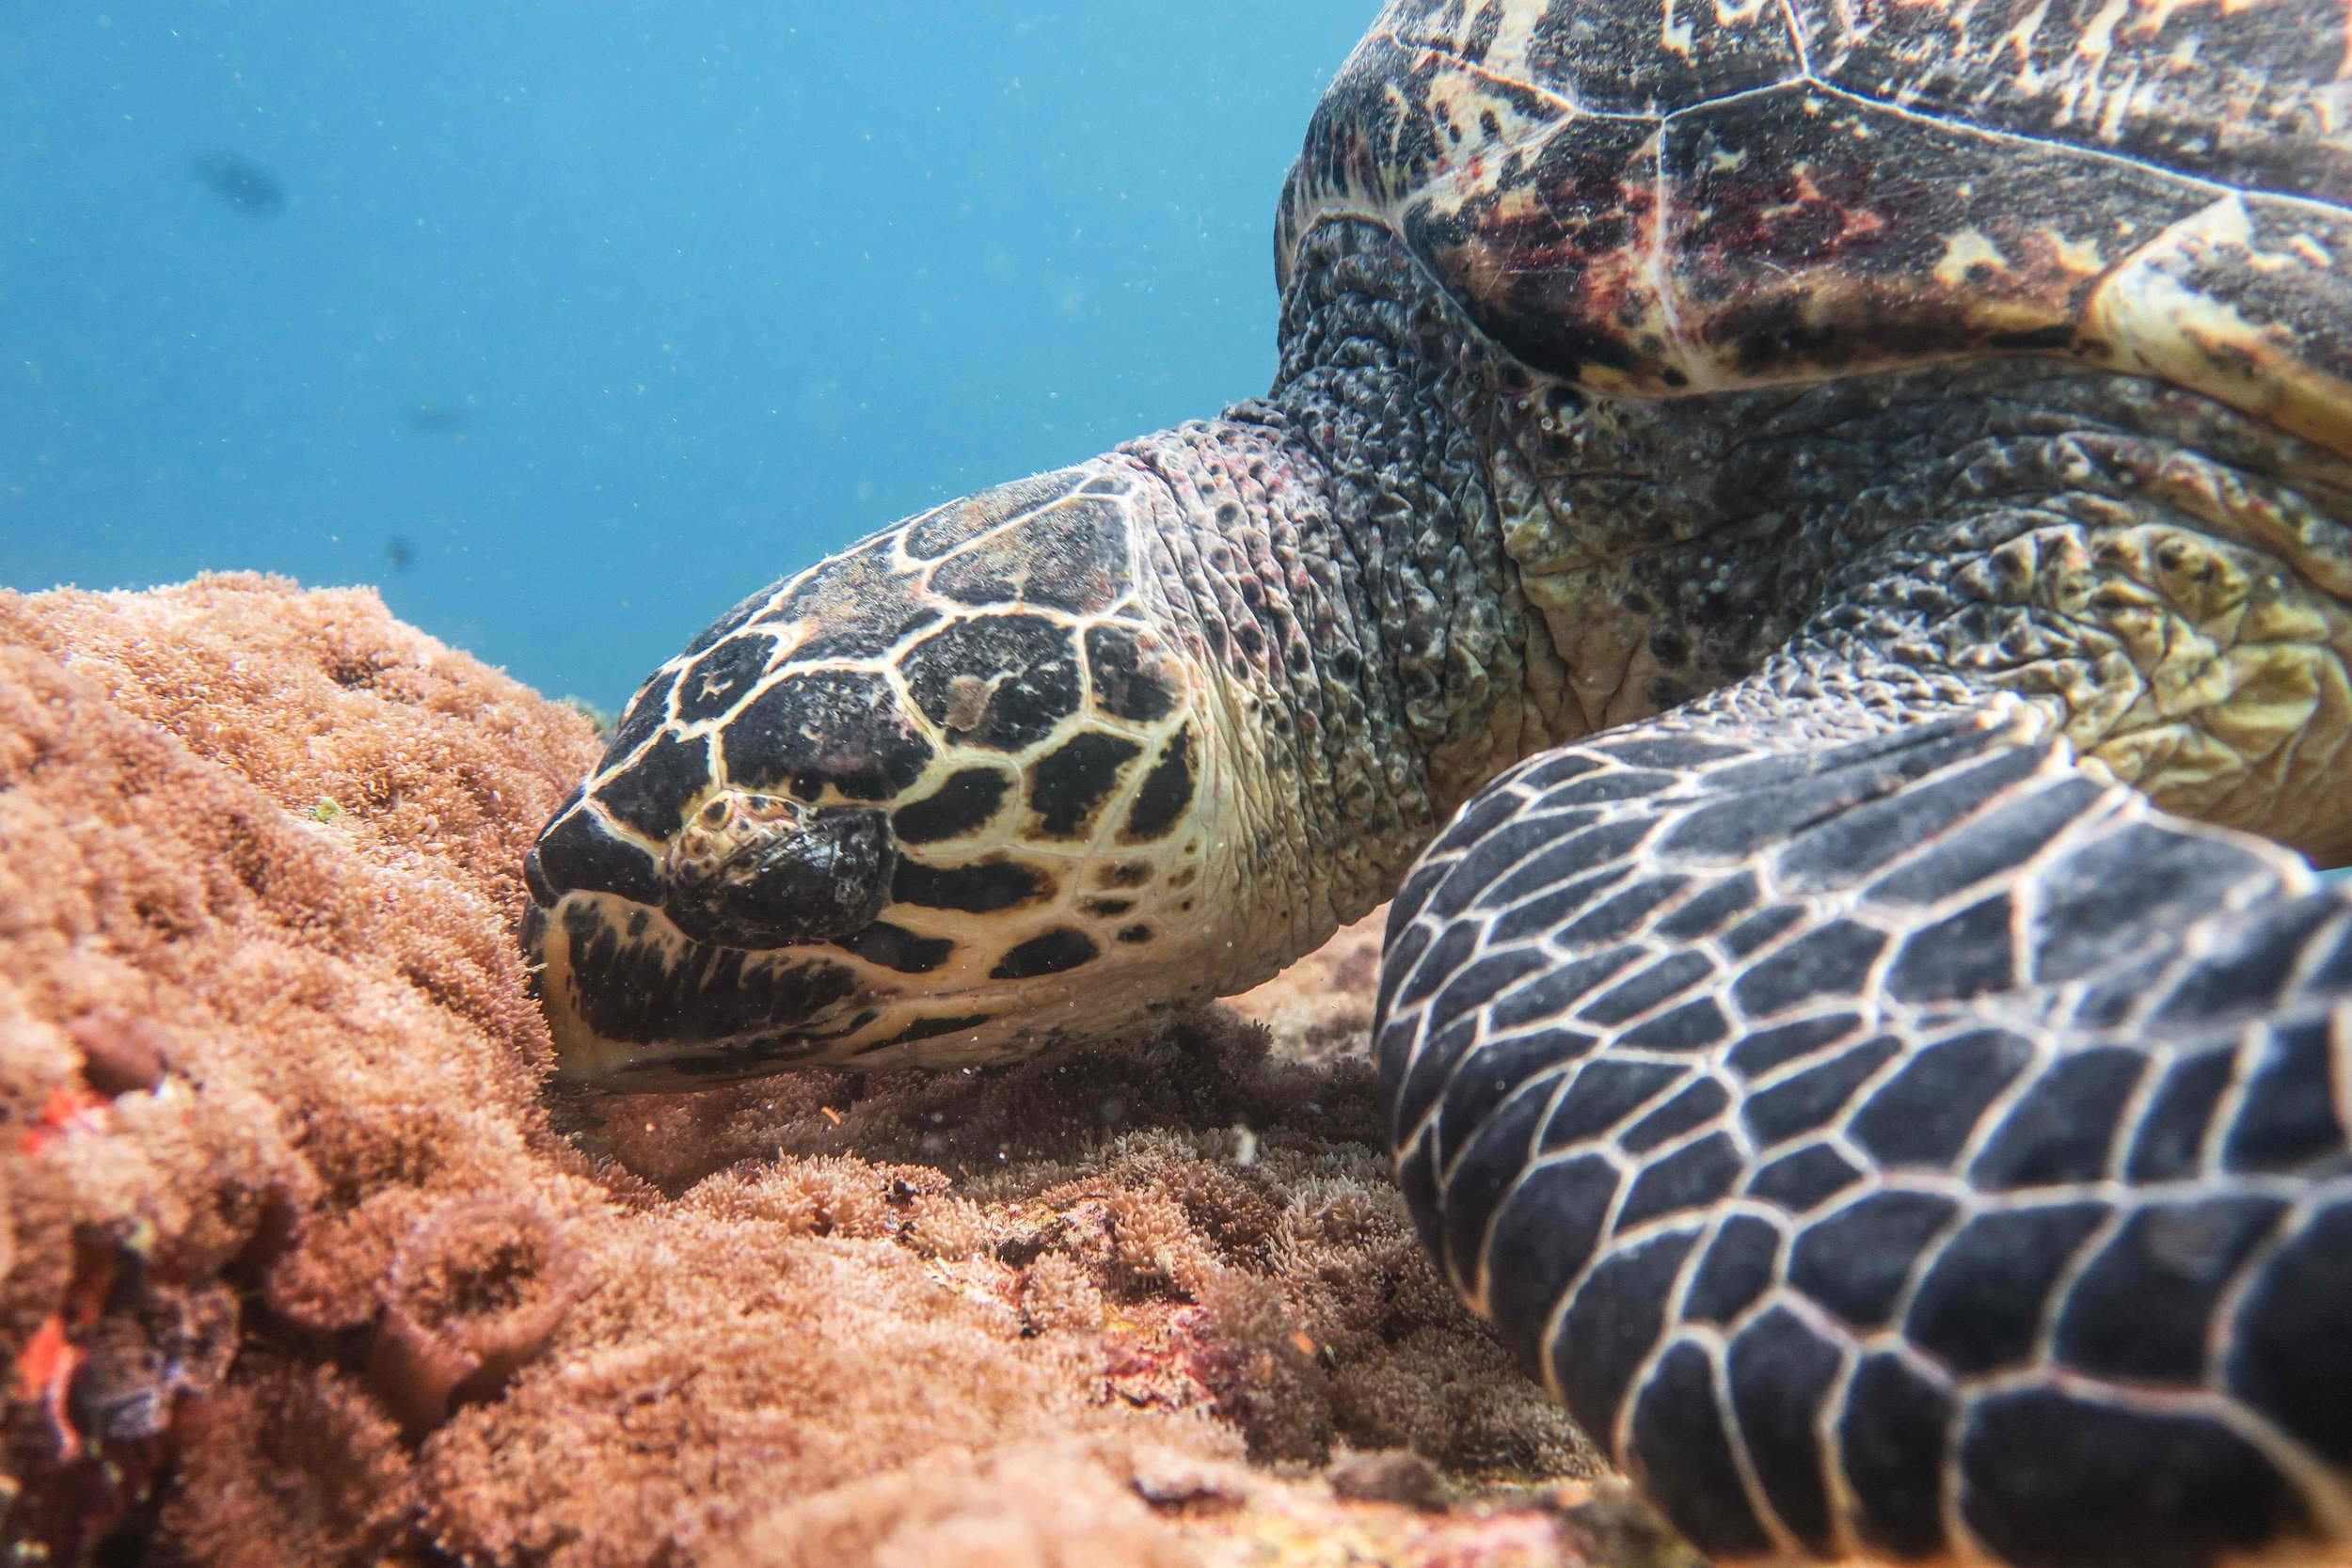 Scuba Diving in The Maldives, Underwater Photography, Turtle